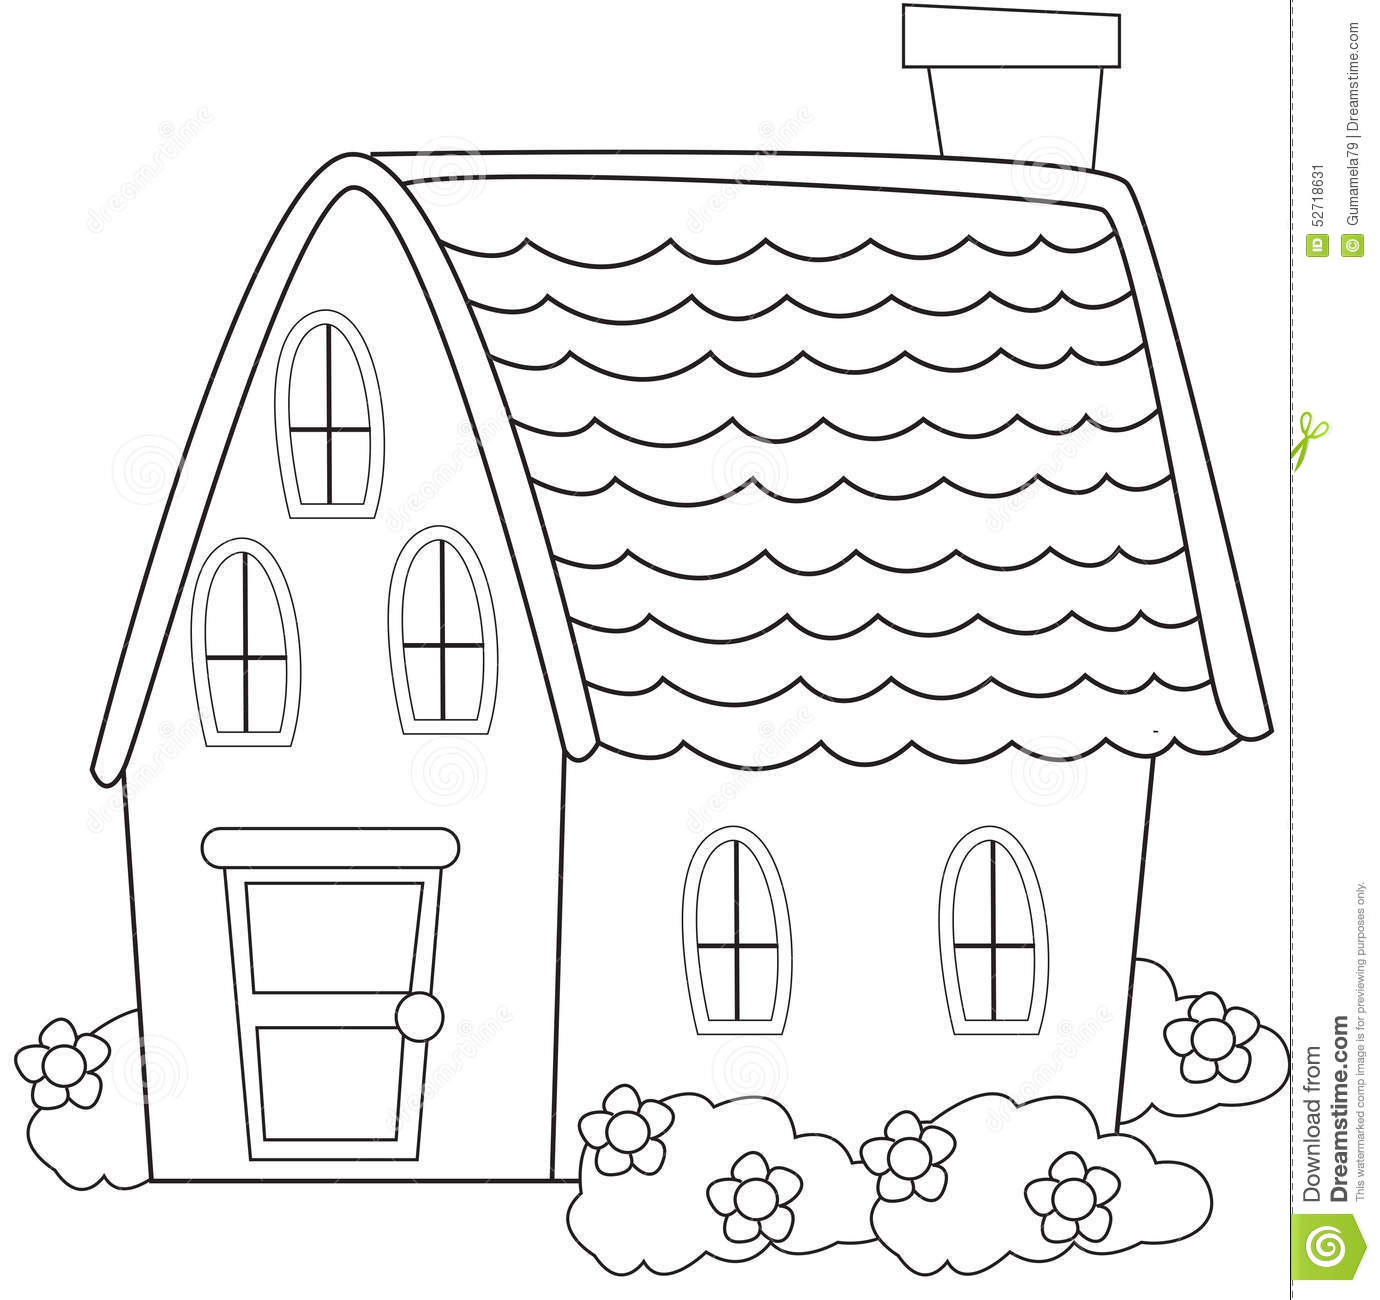 house-plants-coloring-page-useful-as-book-kids-52718631